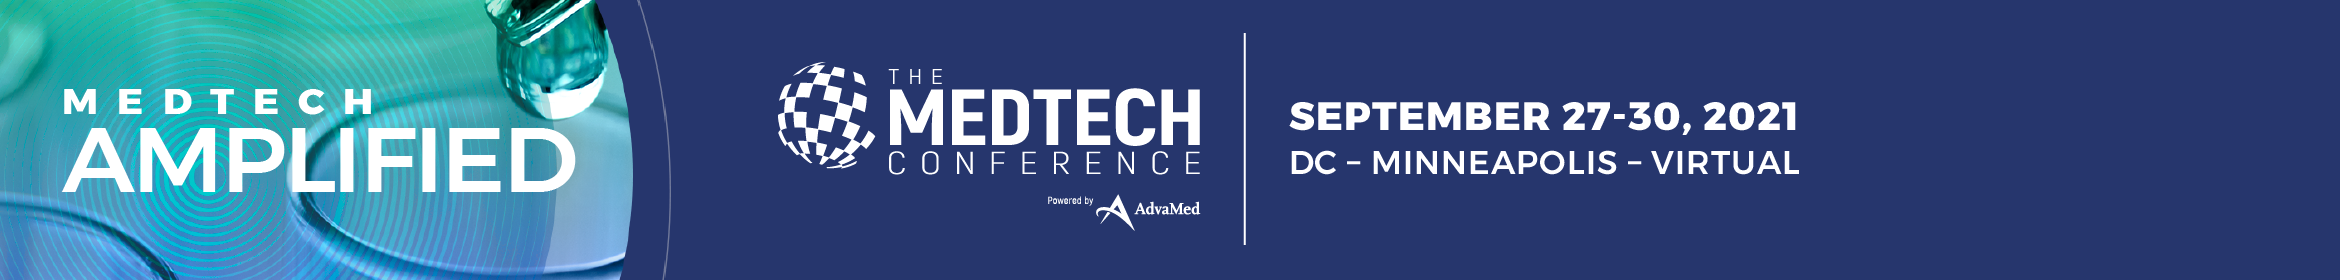 The MedTech Conference 2021 Main banner